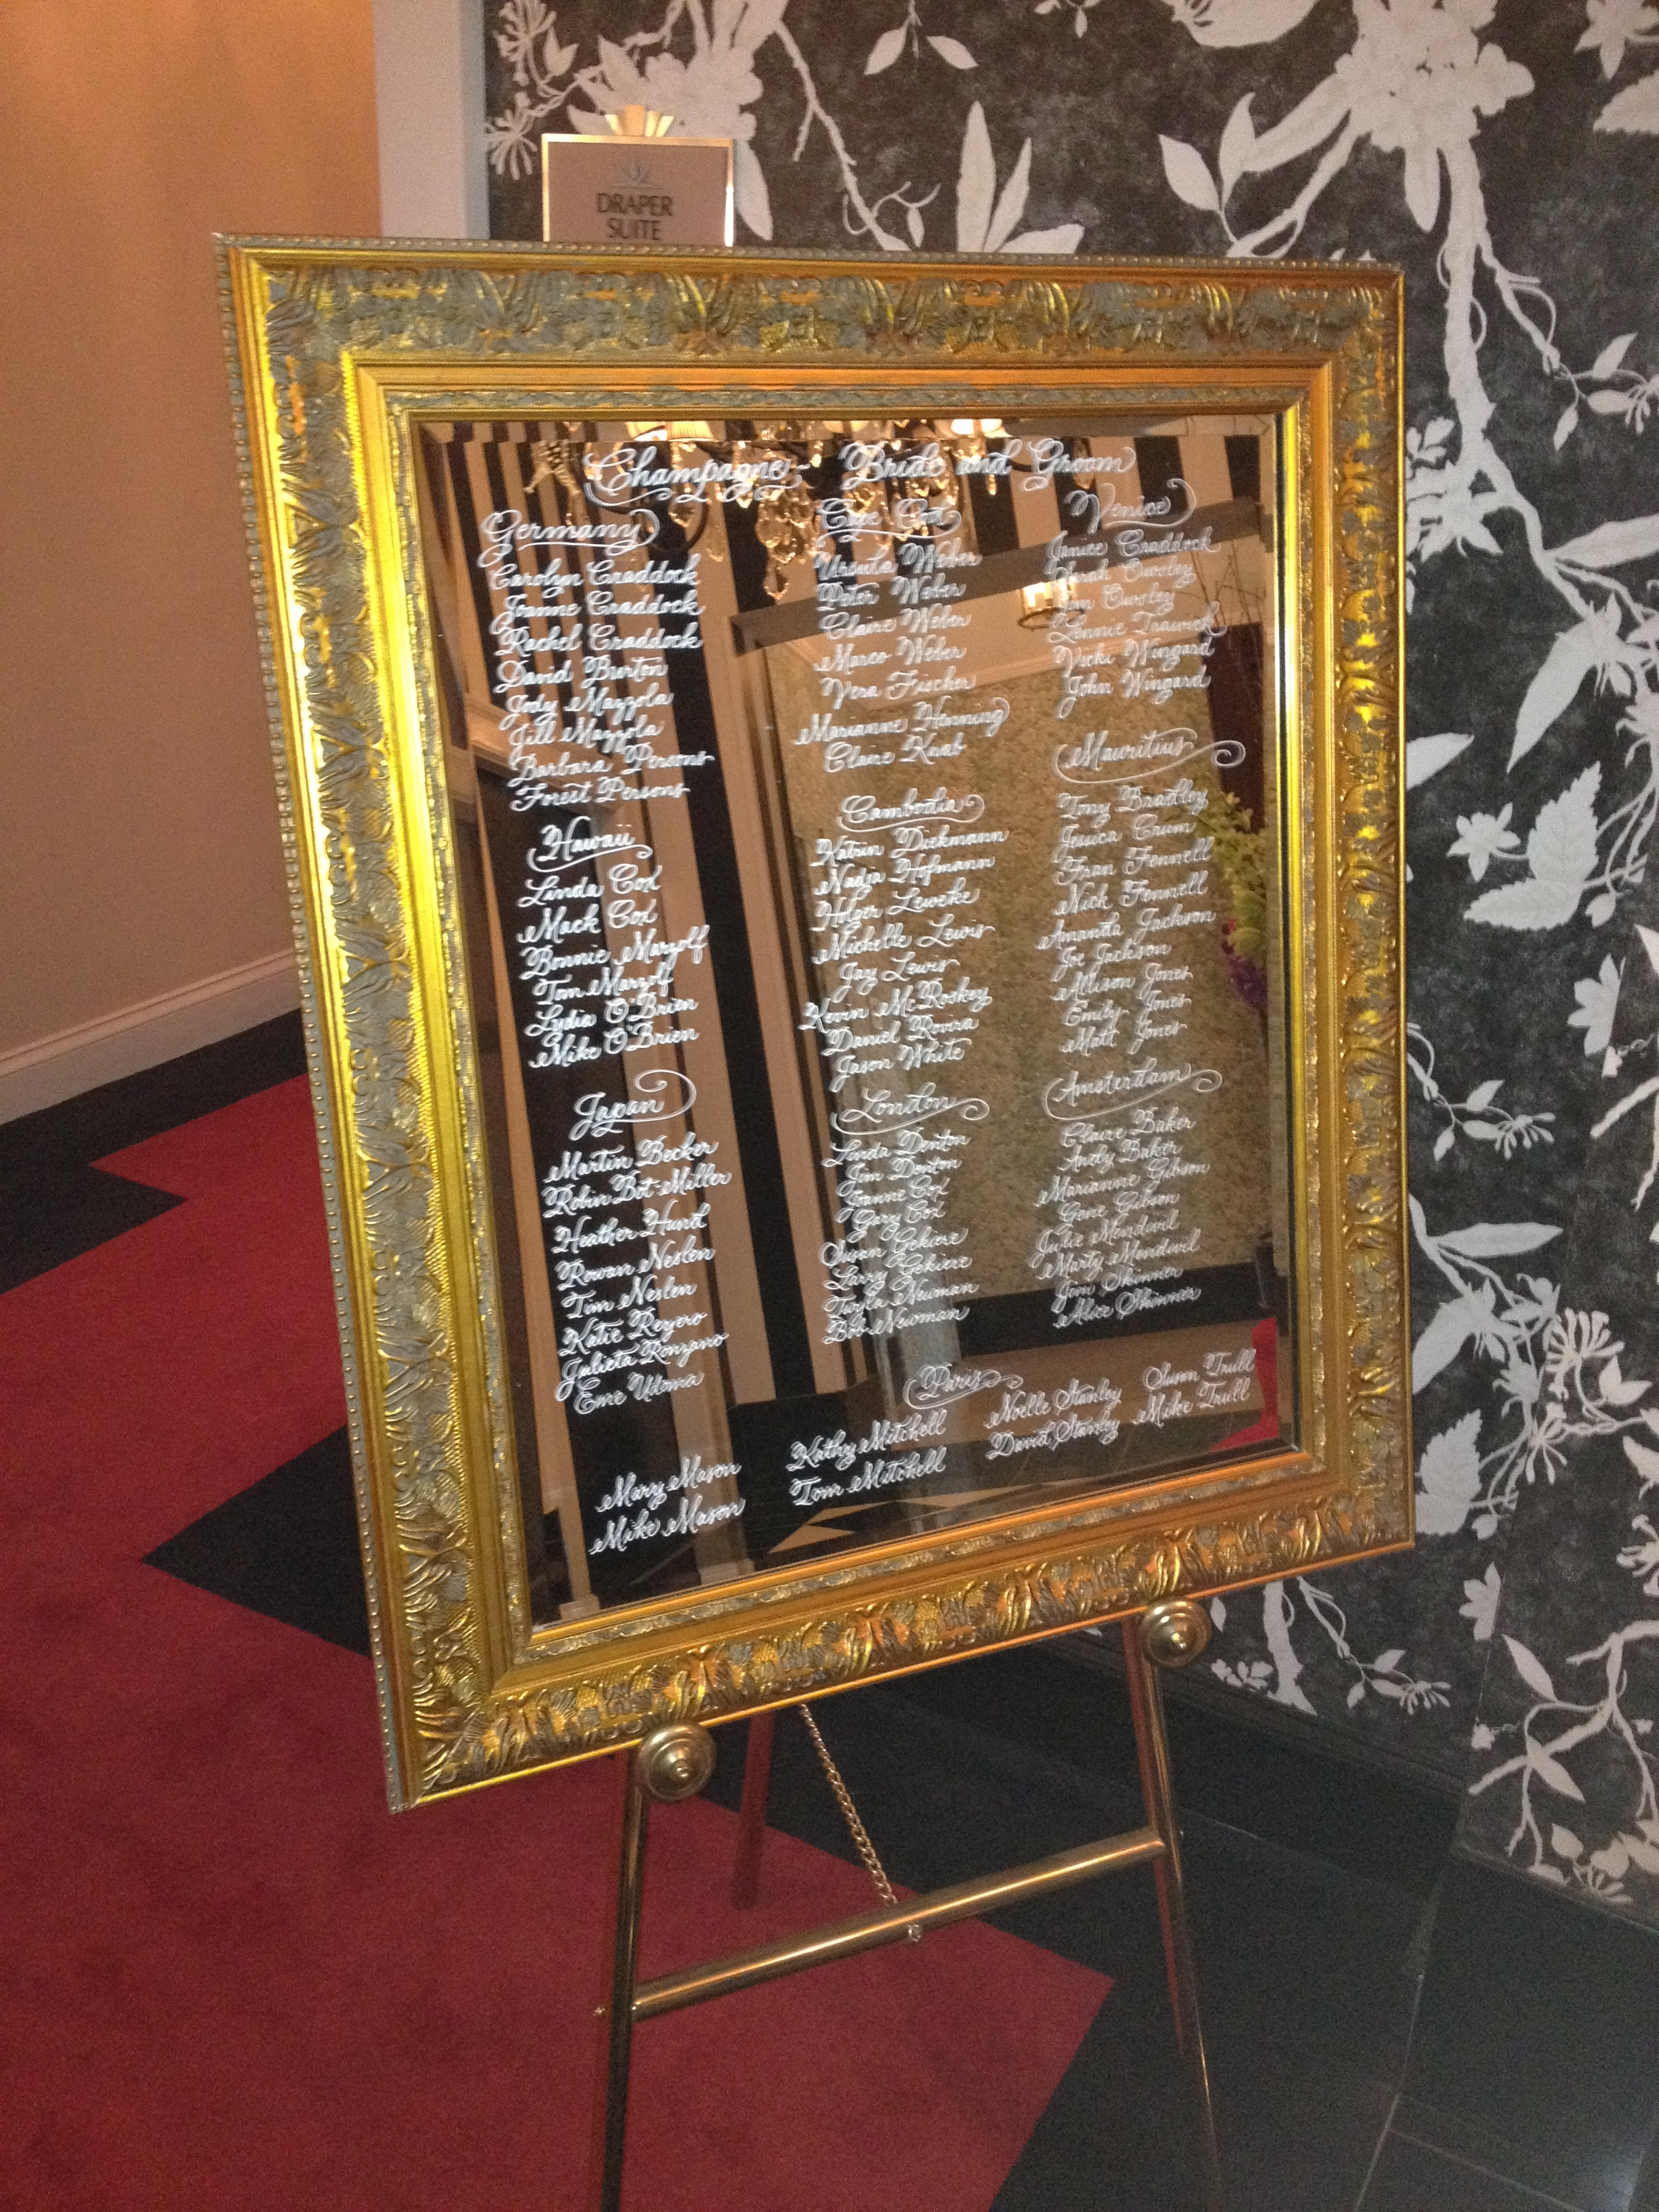 Table seating chart hand lettered on mirror at wedding venue